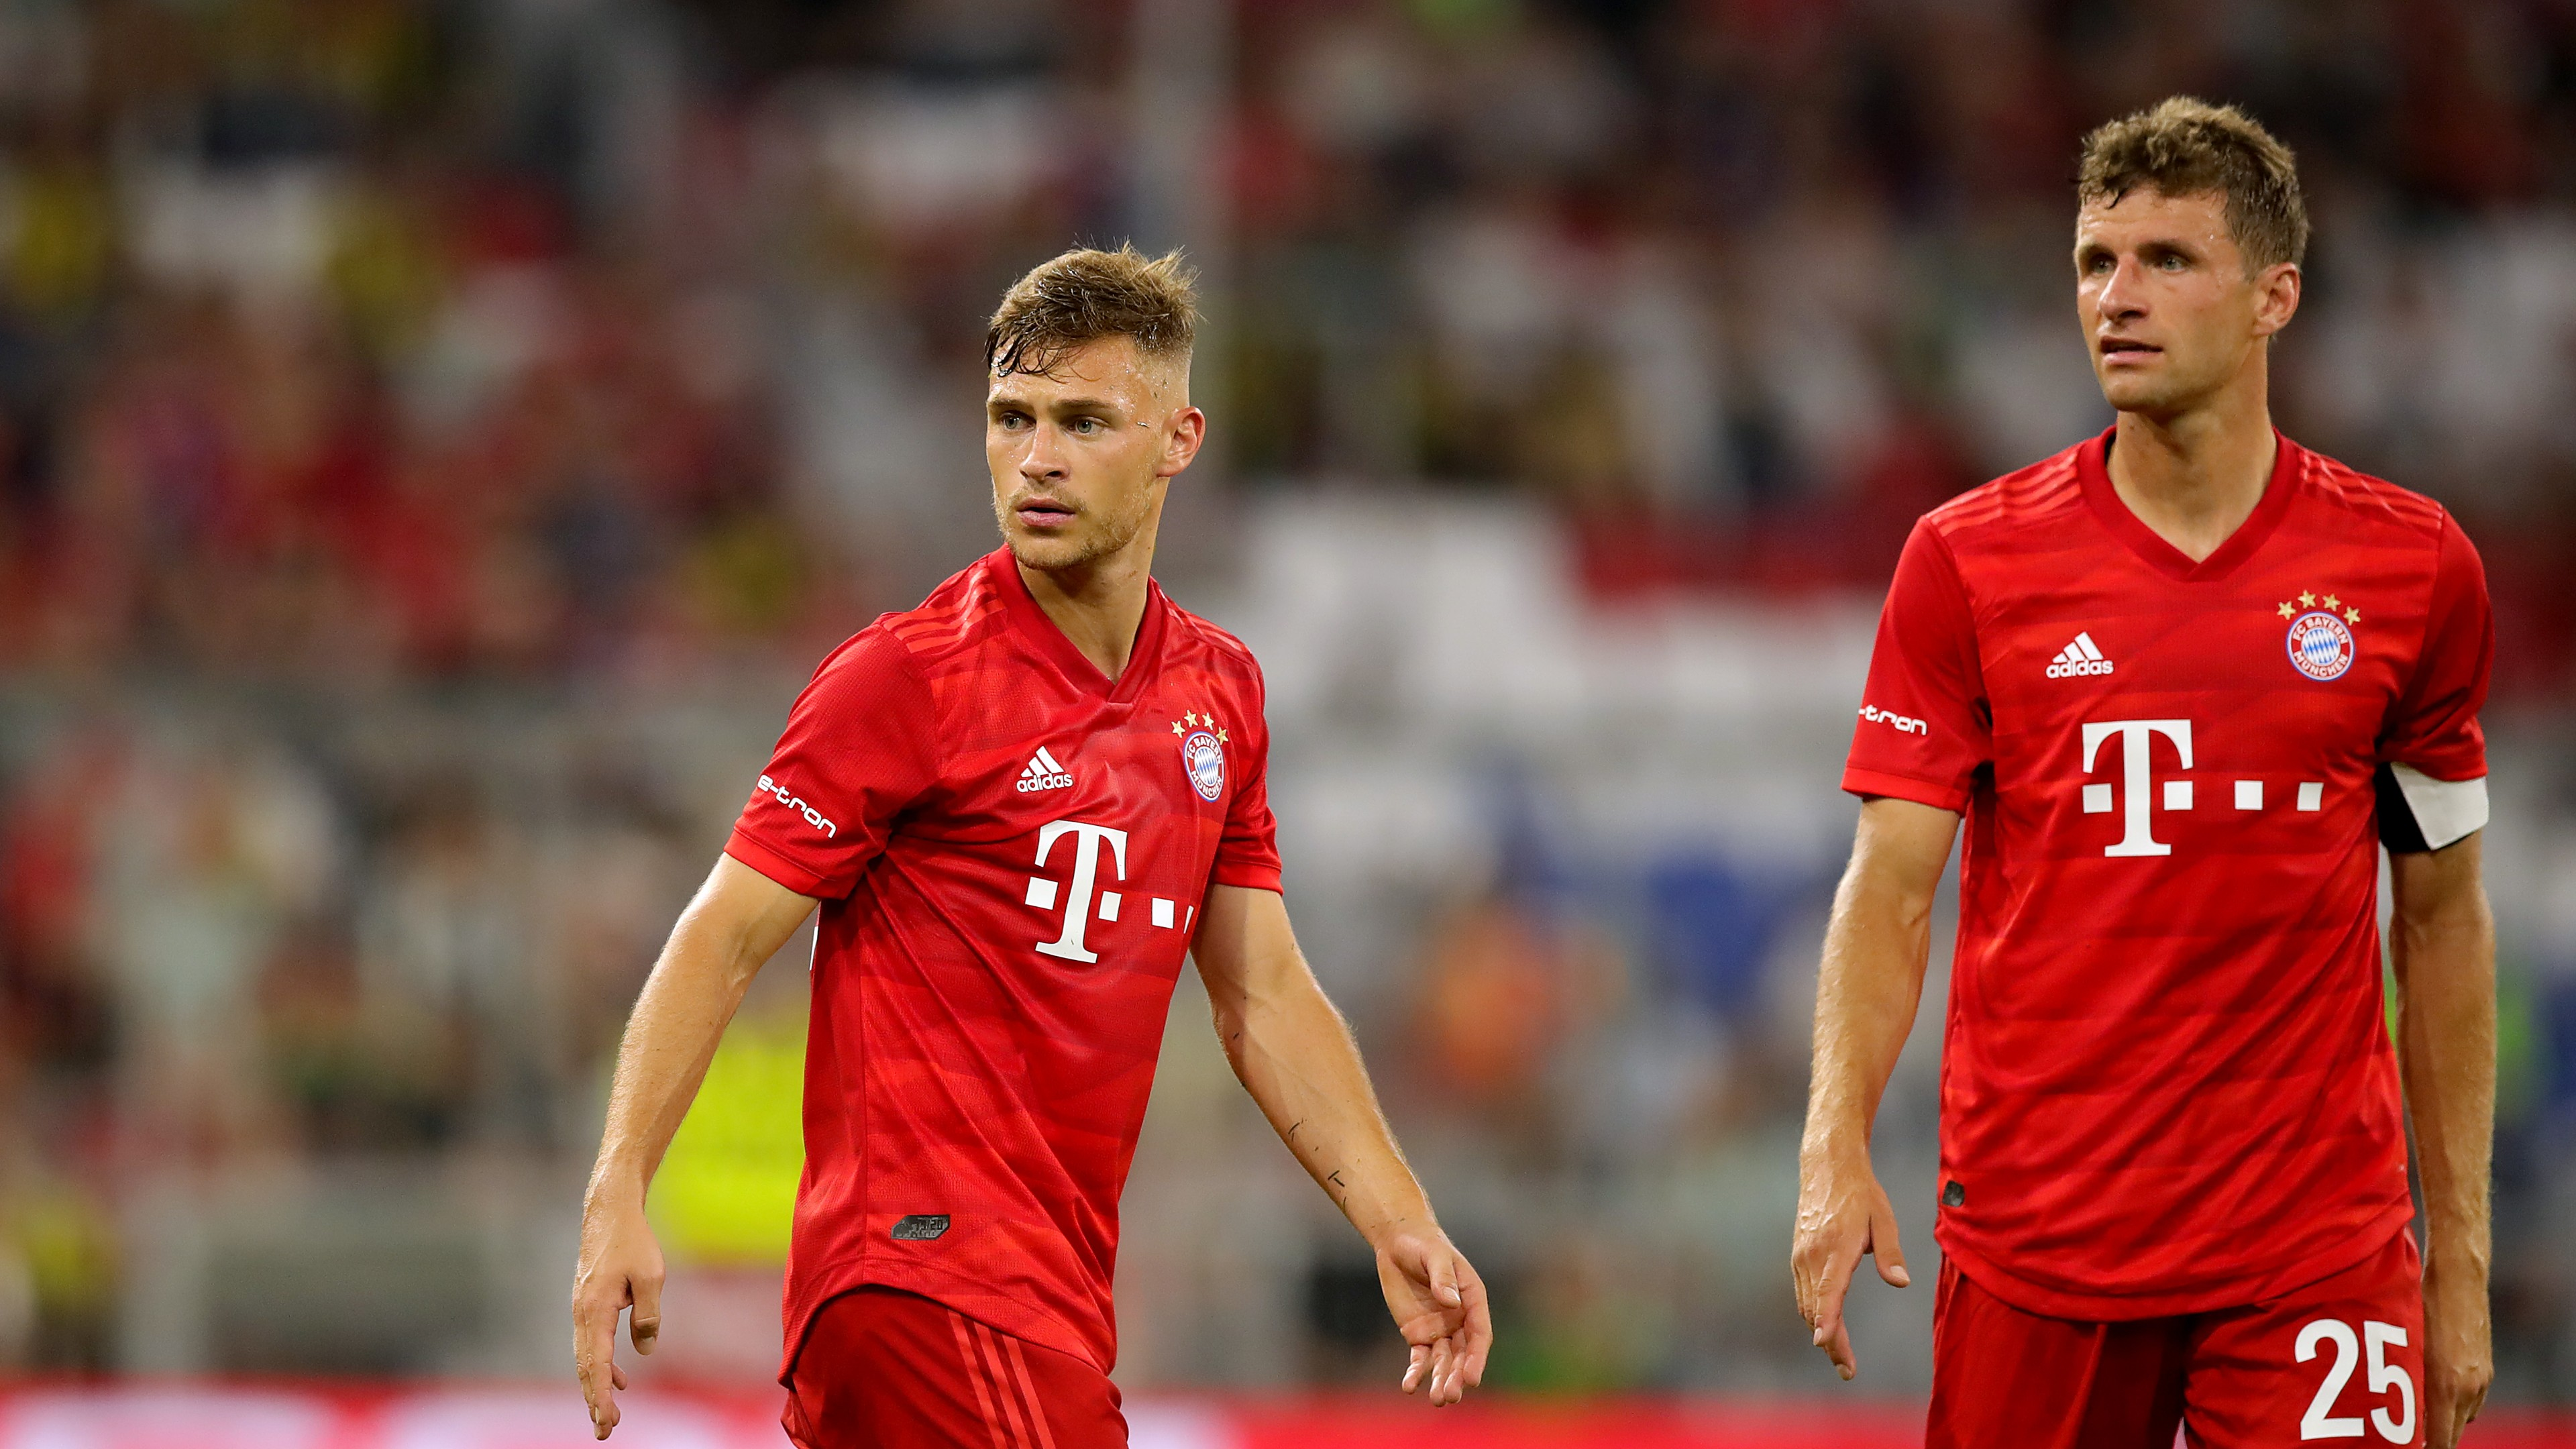 Kimmich can relate to Muller being 'dissatisfied' at Bayern